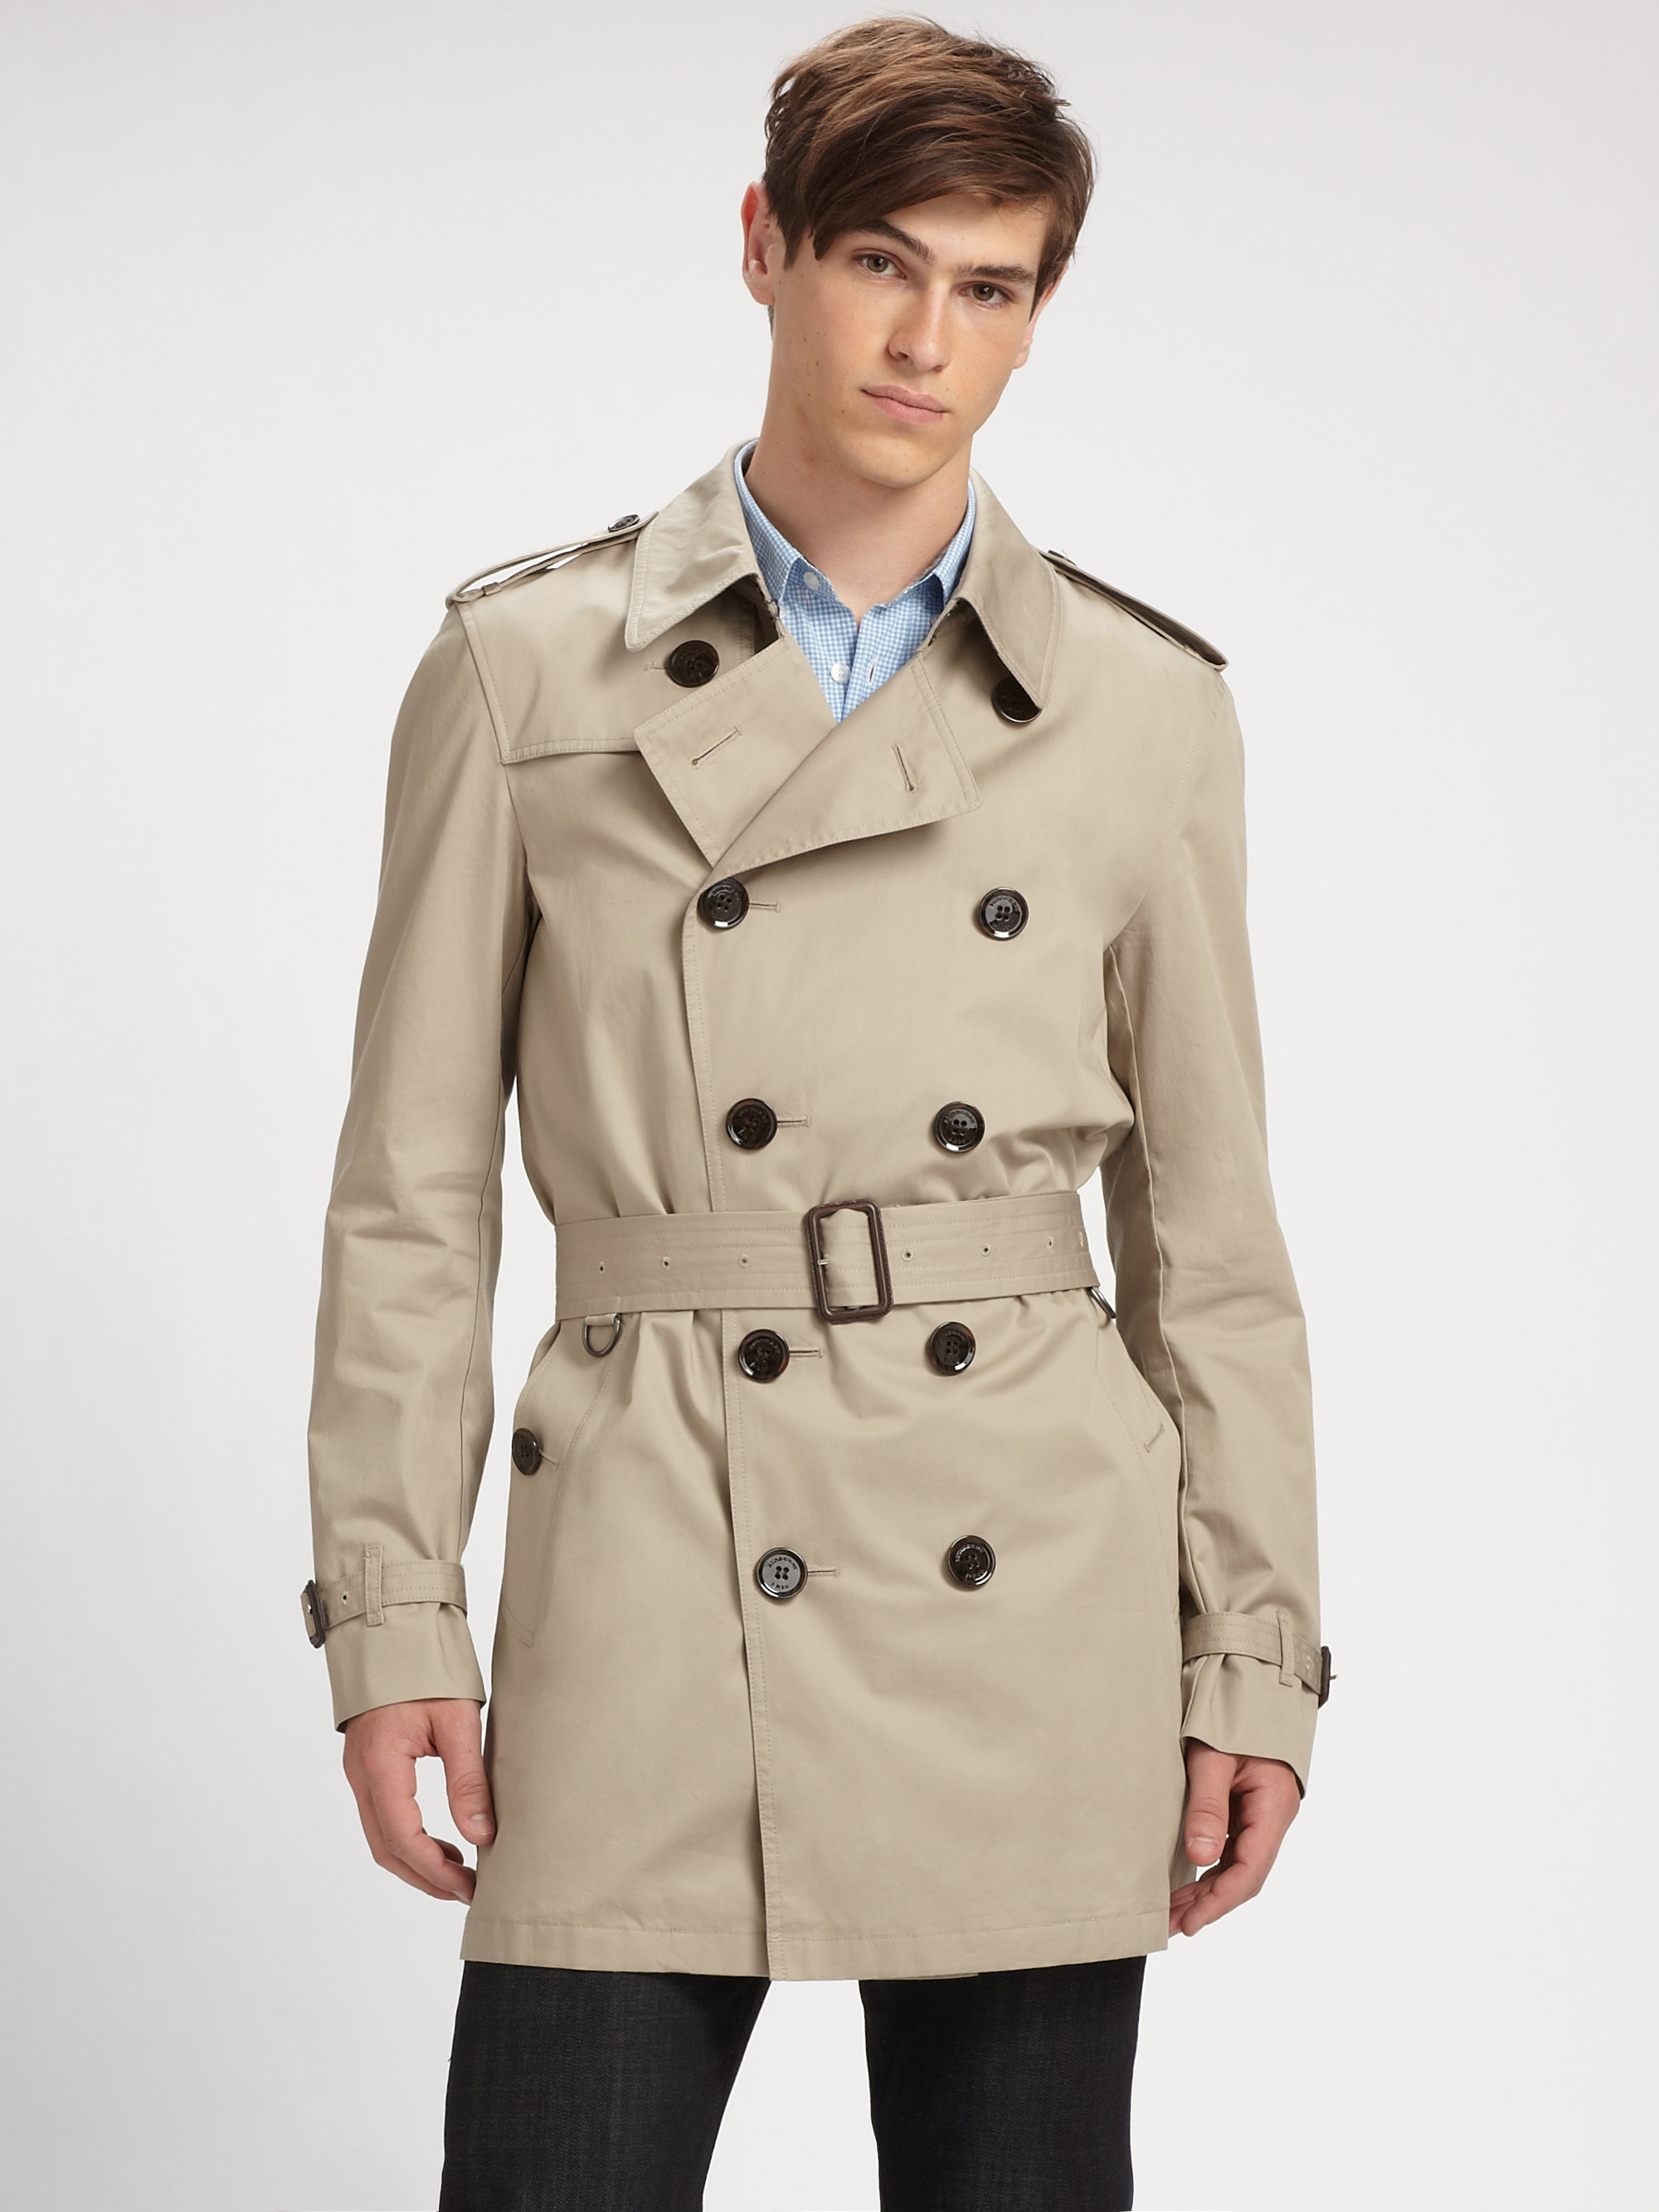 Cufflinks and Trench Coats